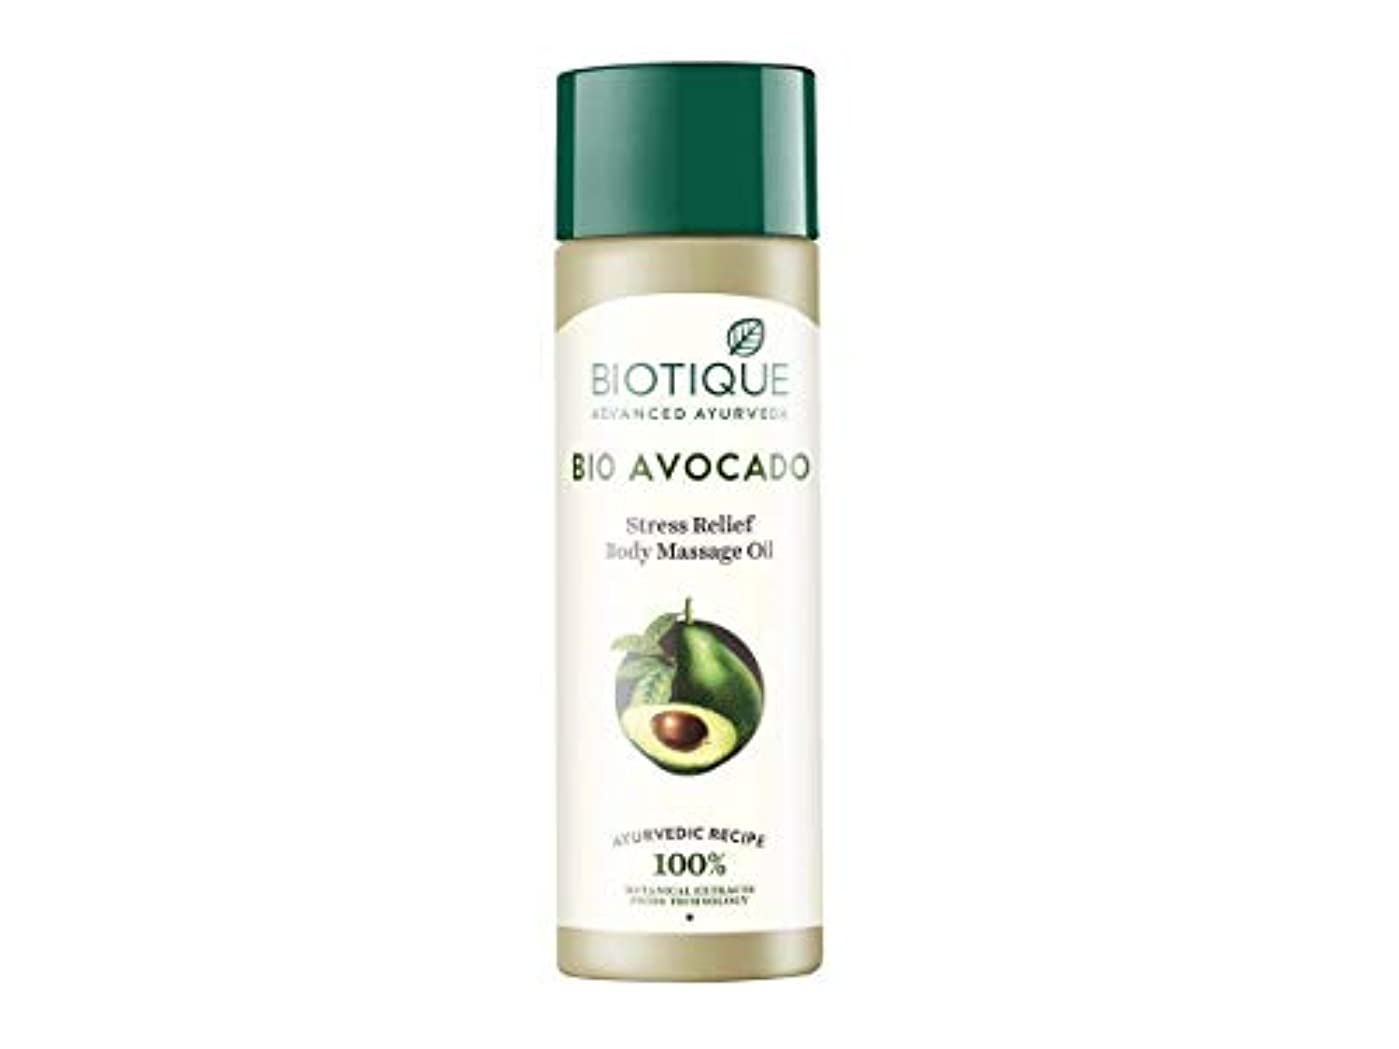 Biotique Bio Cado Avocado Stress Relief Body Massage Oil, 200ml Relaxing oil Biotique Bio Cadoアボカドストレスリリーフボディマッサージオイル...